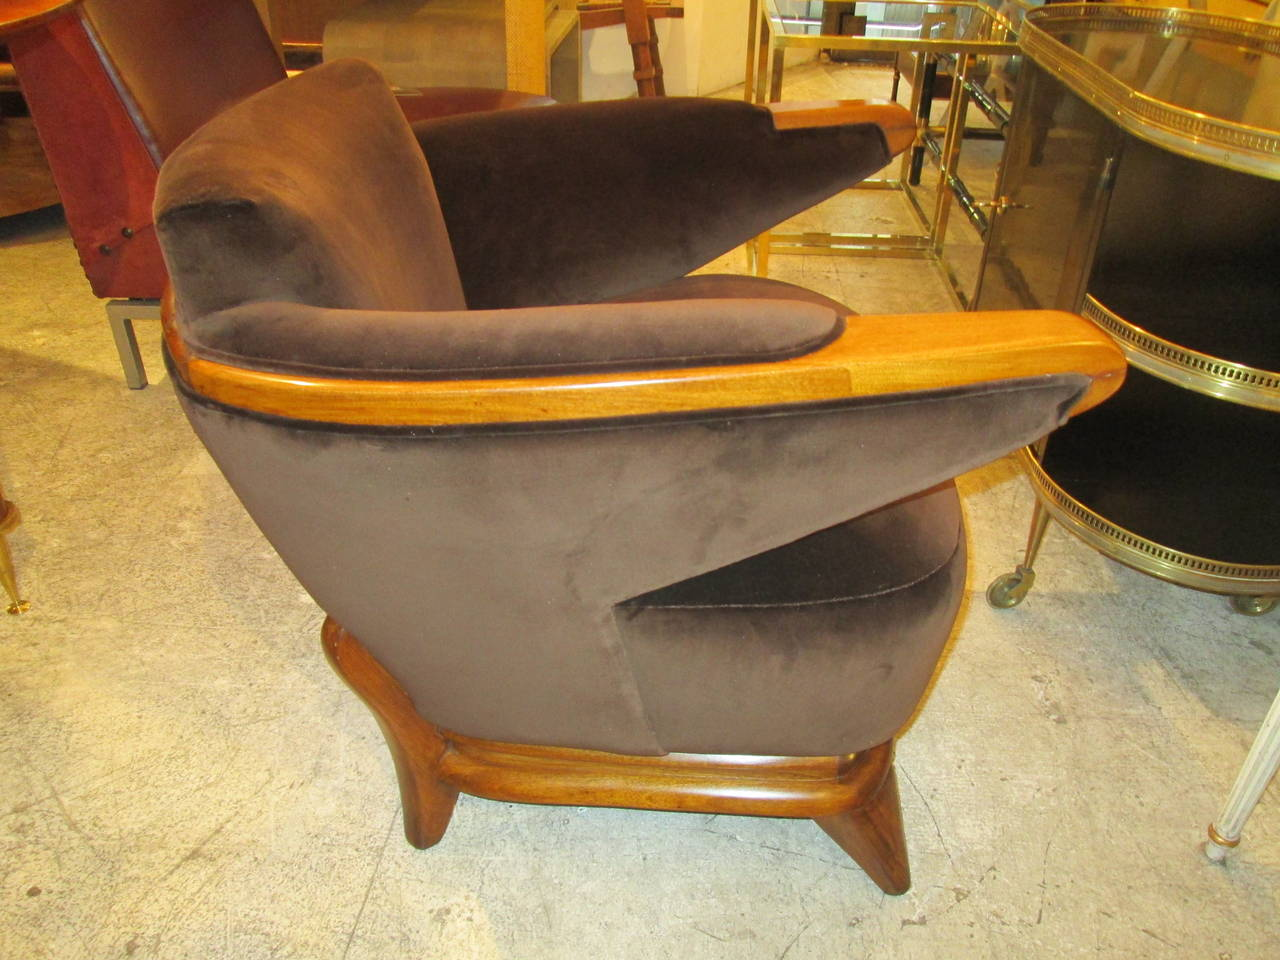 Pair of Sculptural Mid-Century Lounge Chairs with Cantilevered Arms In Excellent Condition For Sale In New York, NY